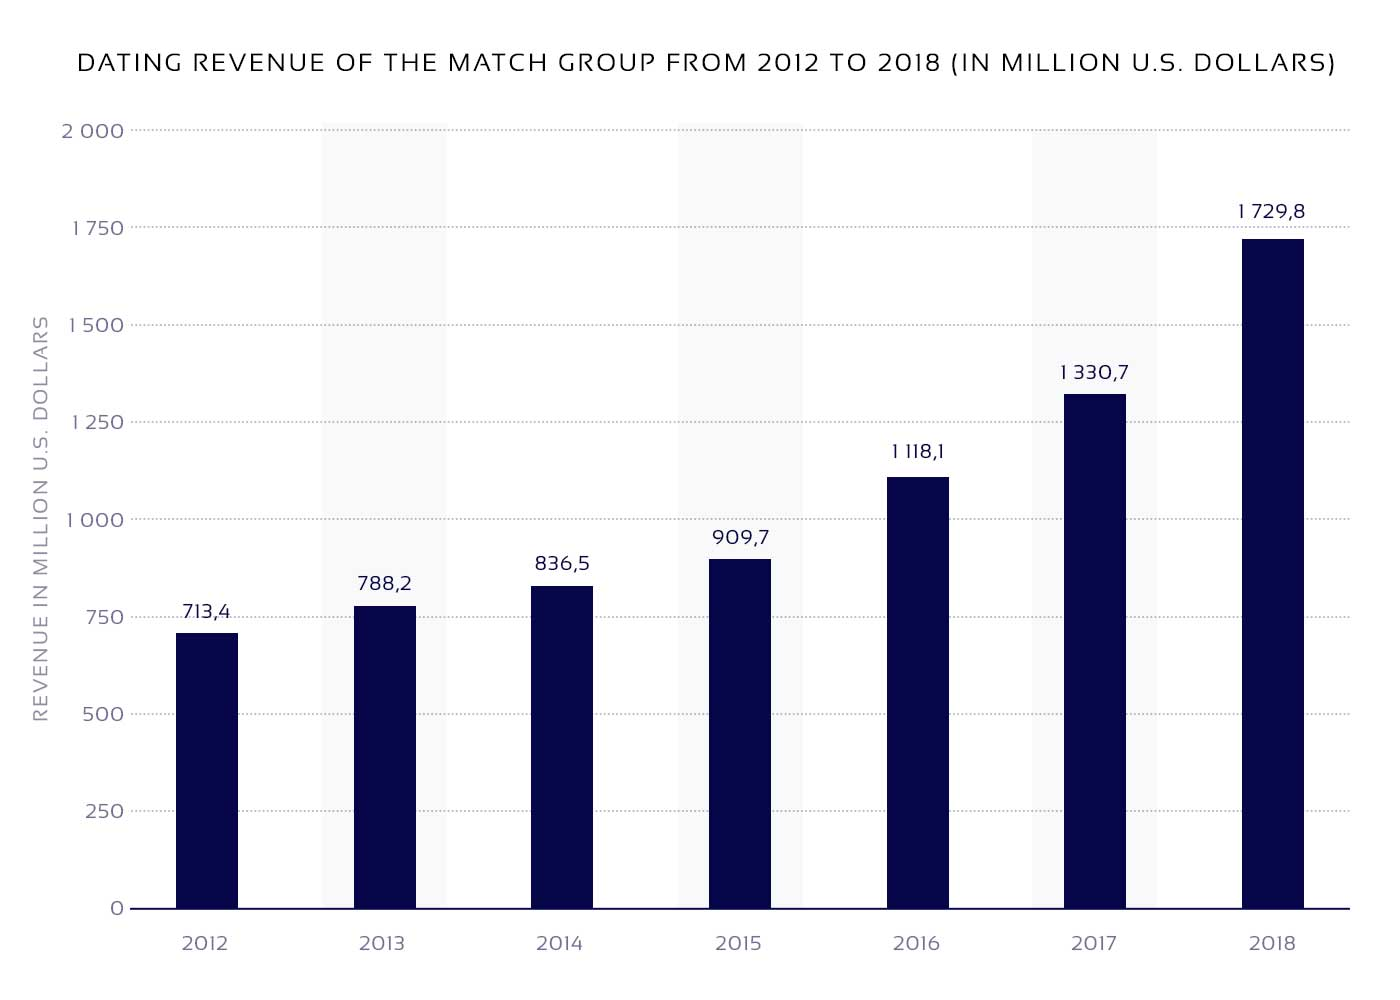 Match Group revenue in millions